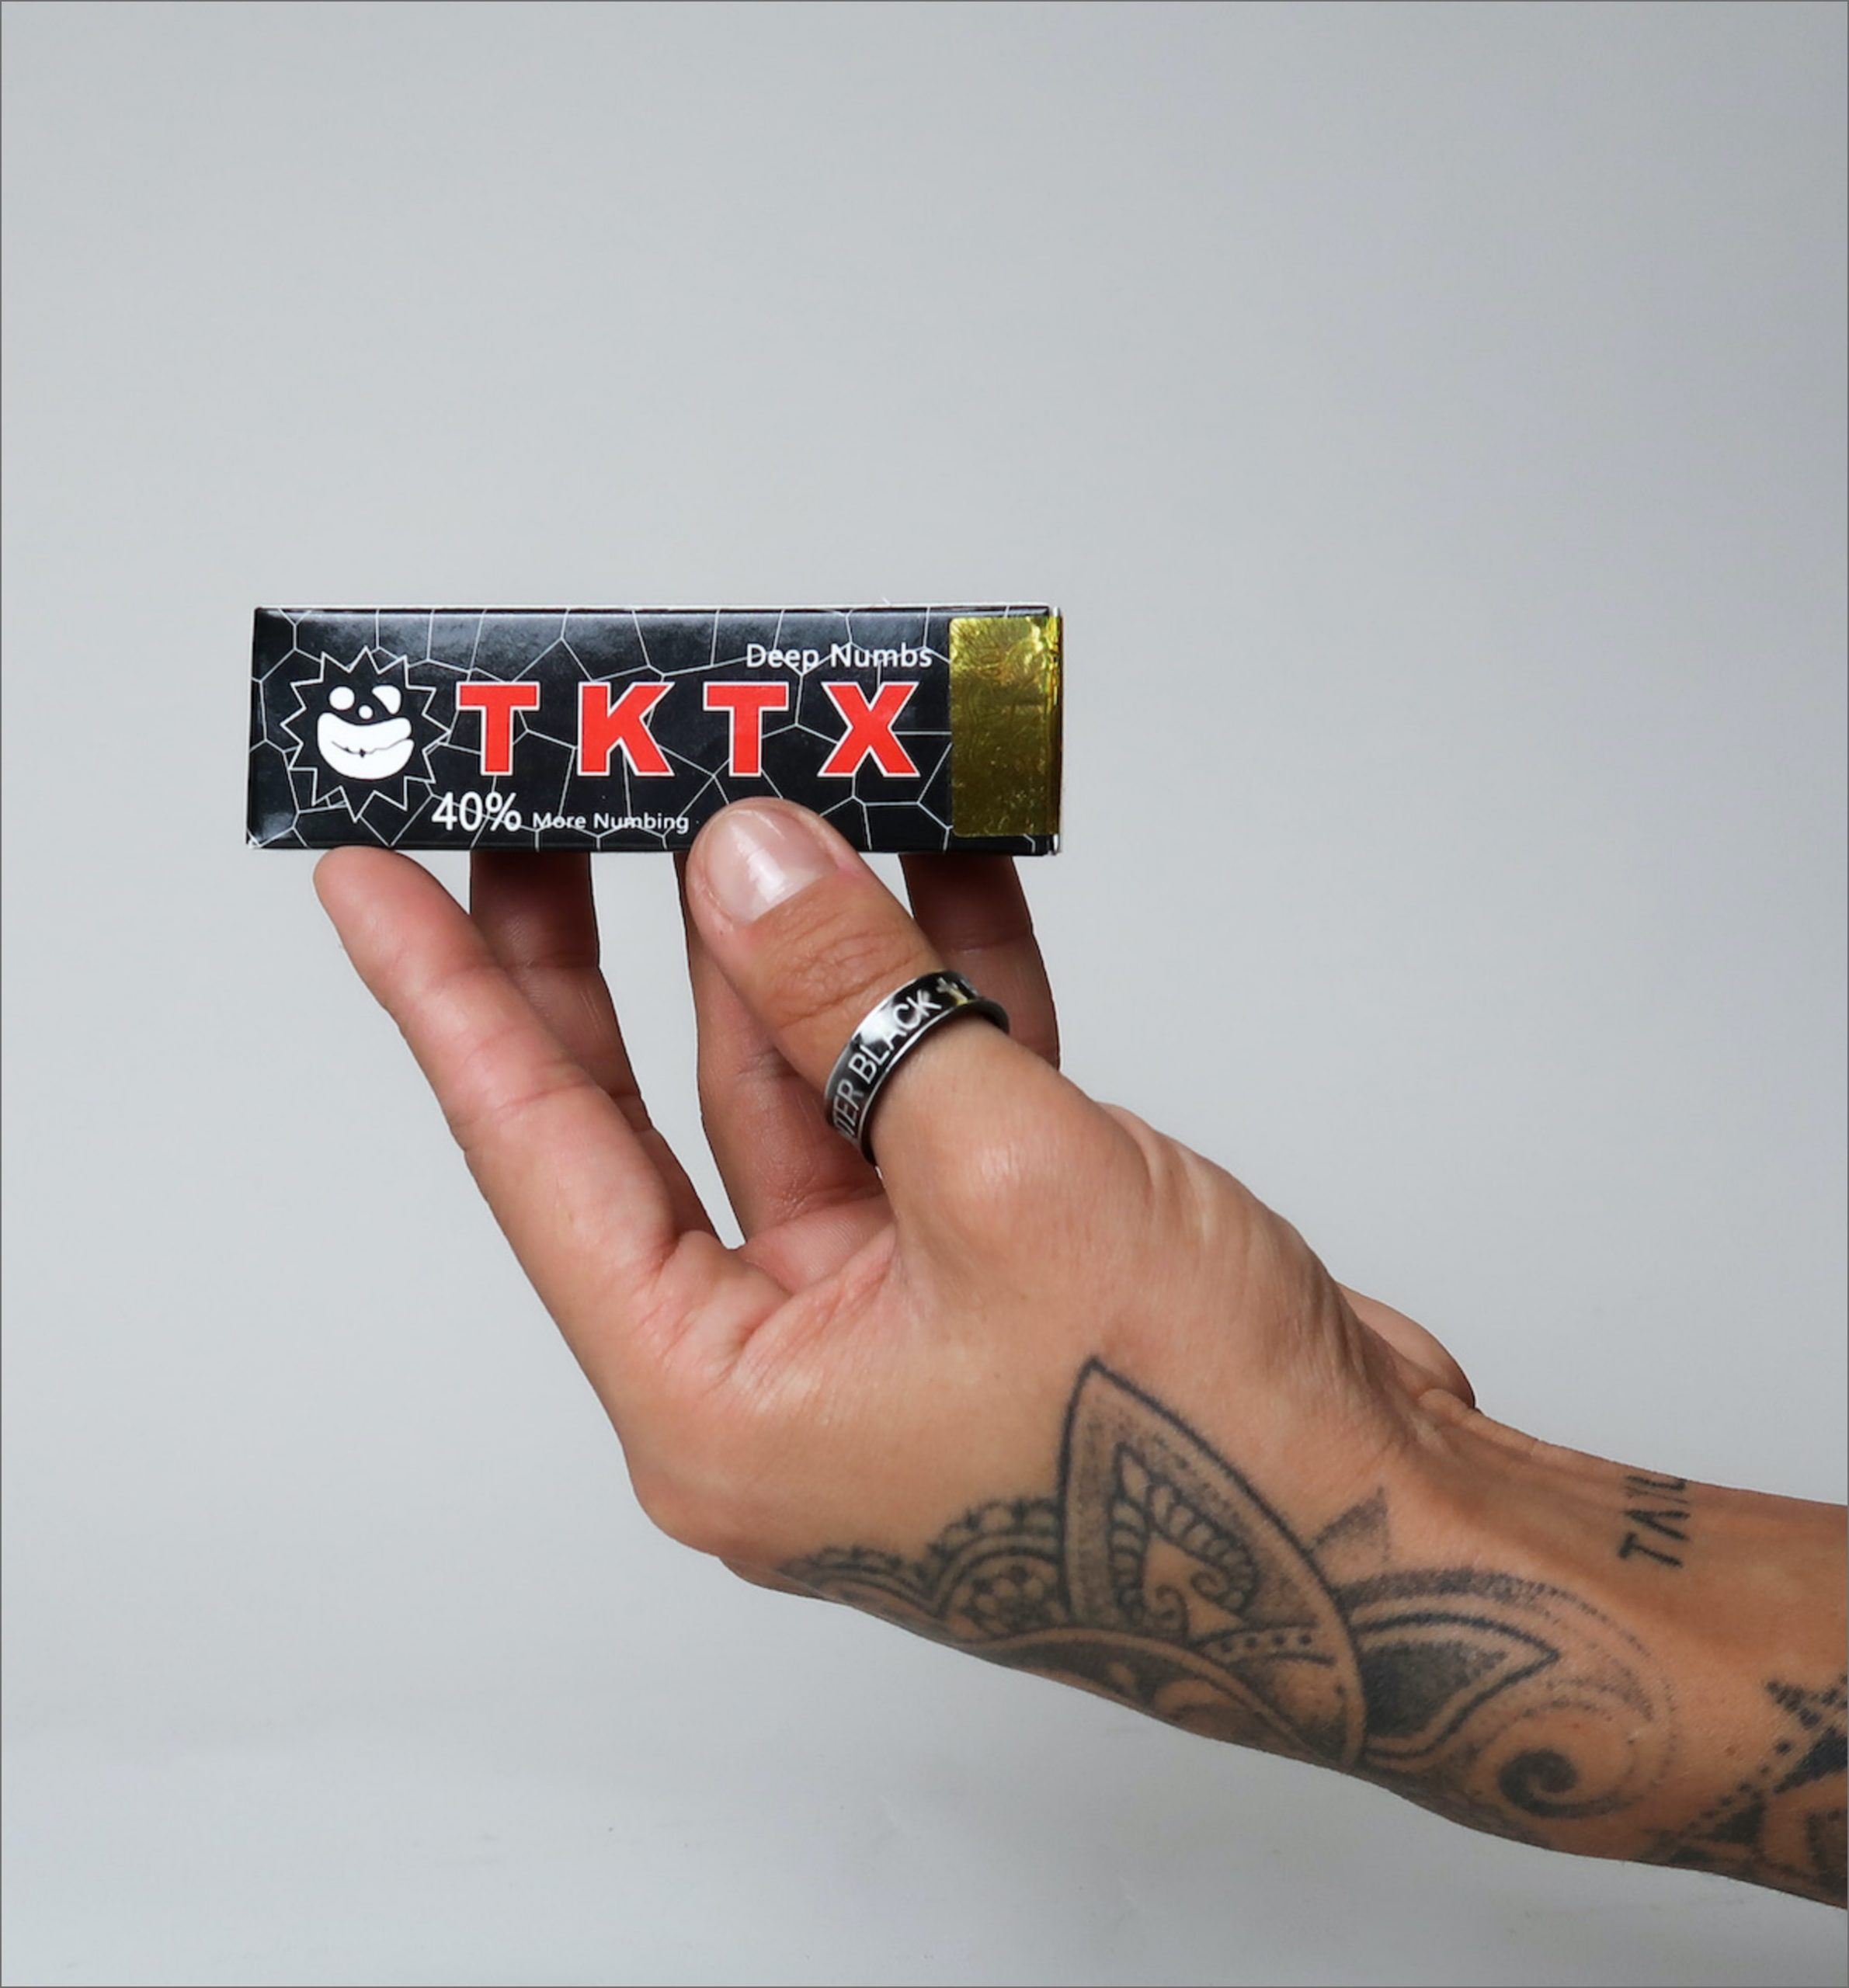 What is the best TKTX numbing cream?